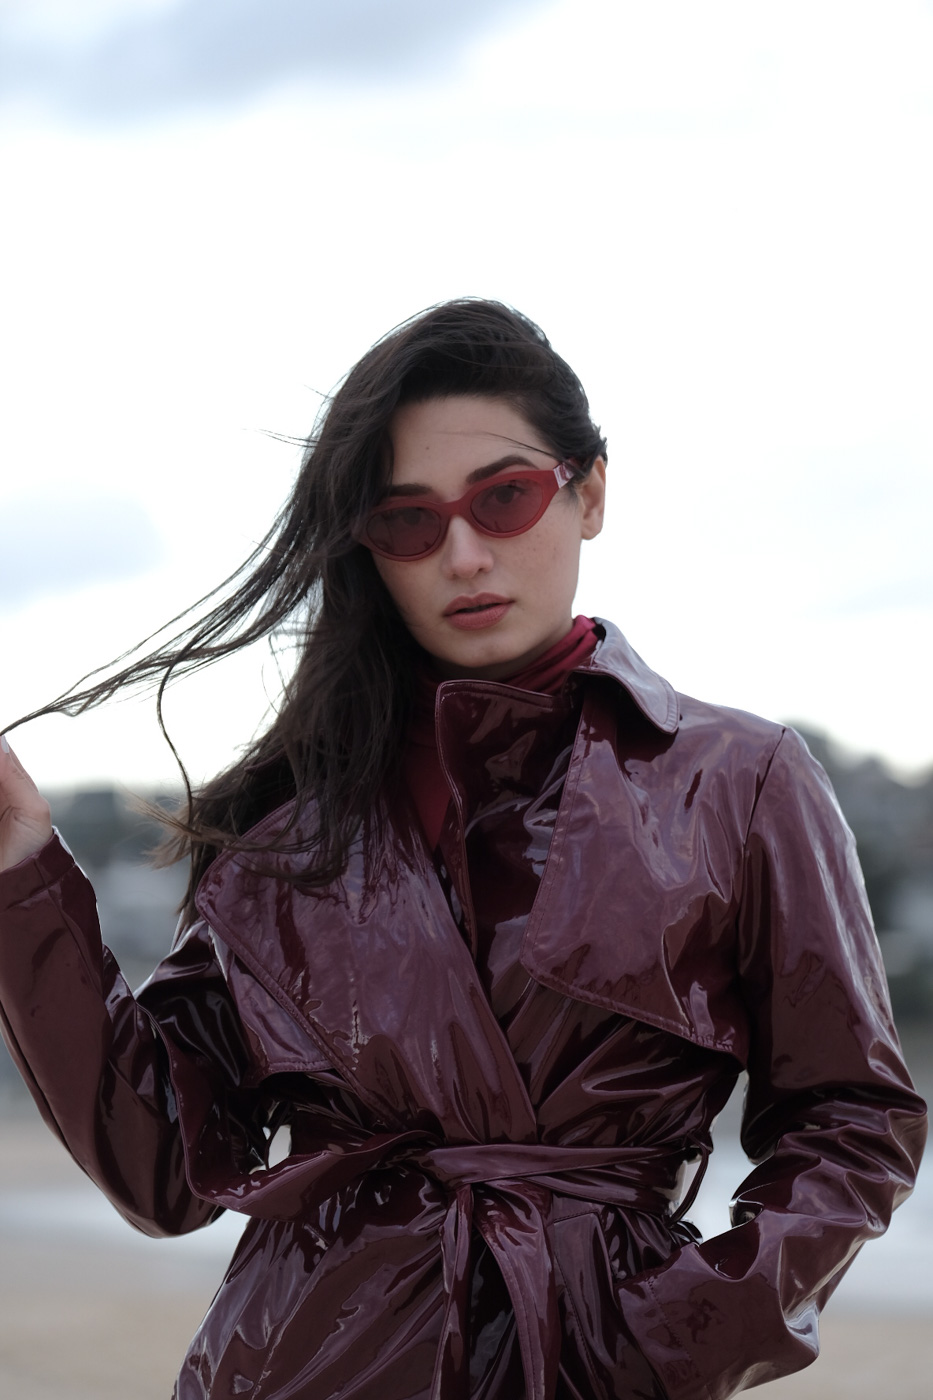 LADY IN RED SHADES. Nicole Andersson